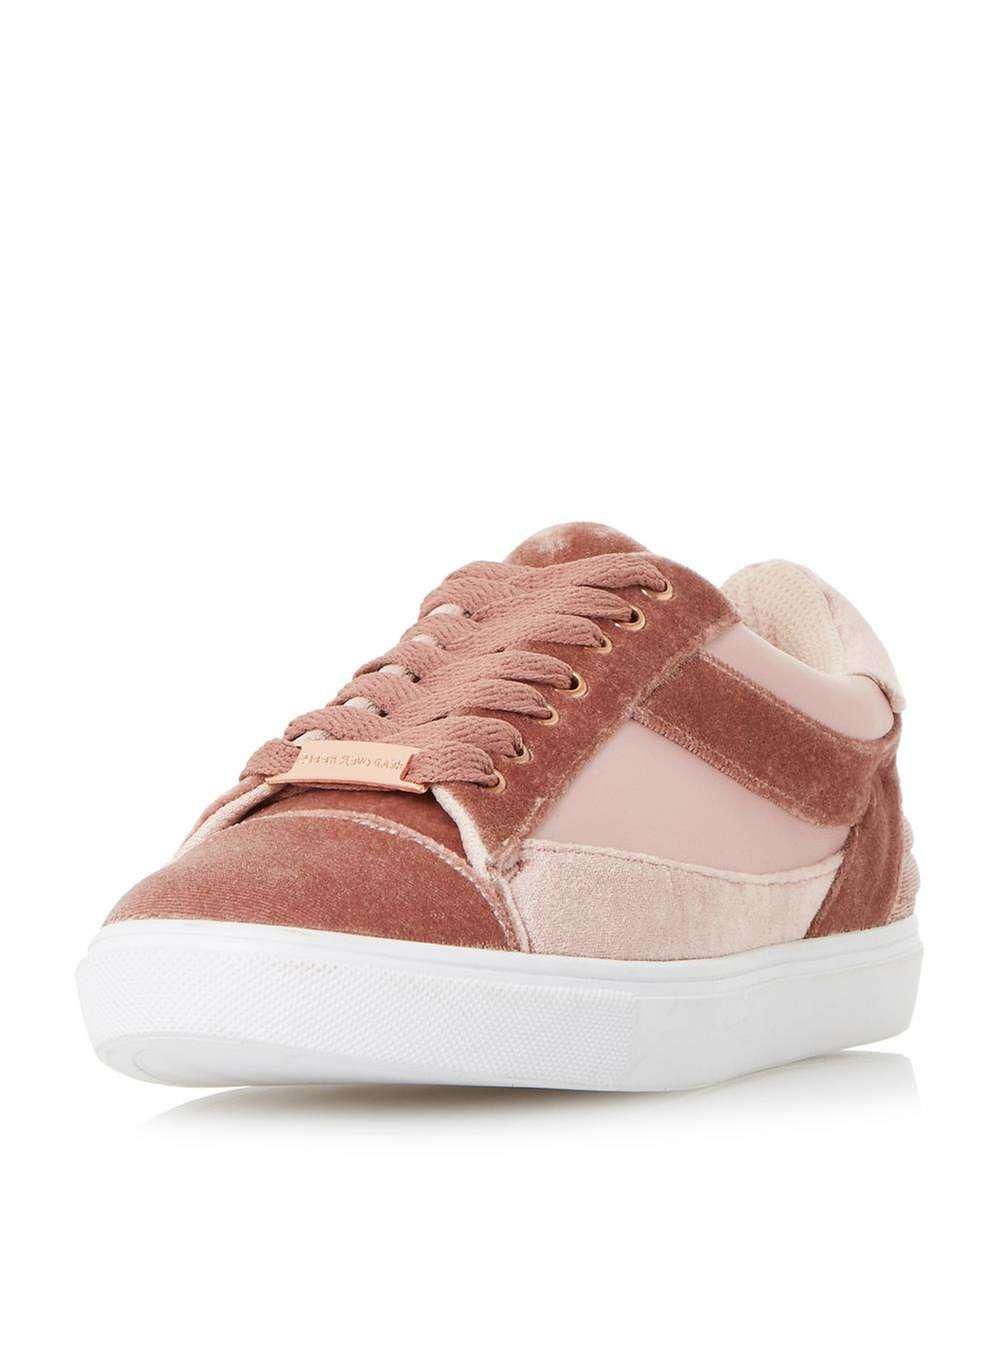 Dune Blush 'elize' Trainers in Pink - Lyst